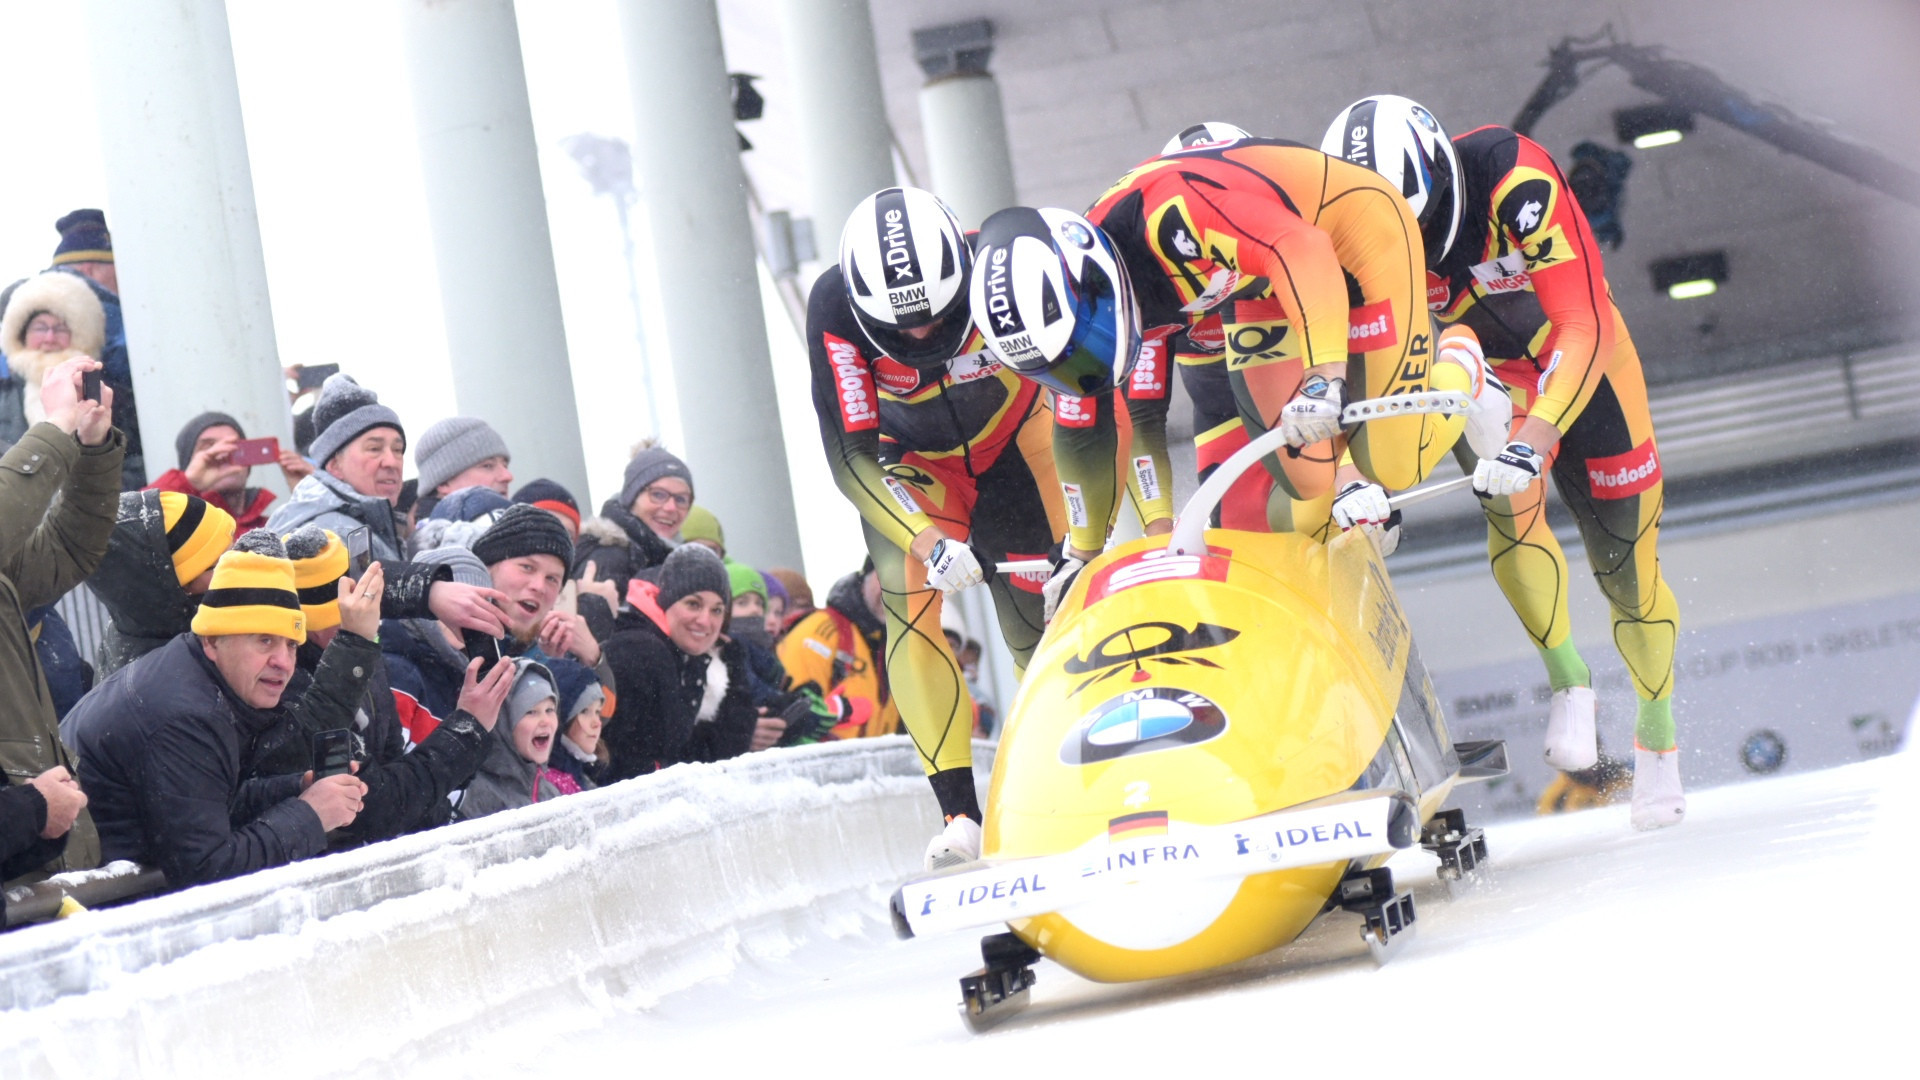 Olympic champion Friedrich swaps silver for gold in second four-man bob race at IBSF World Cup in Winterberg